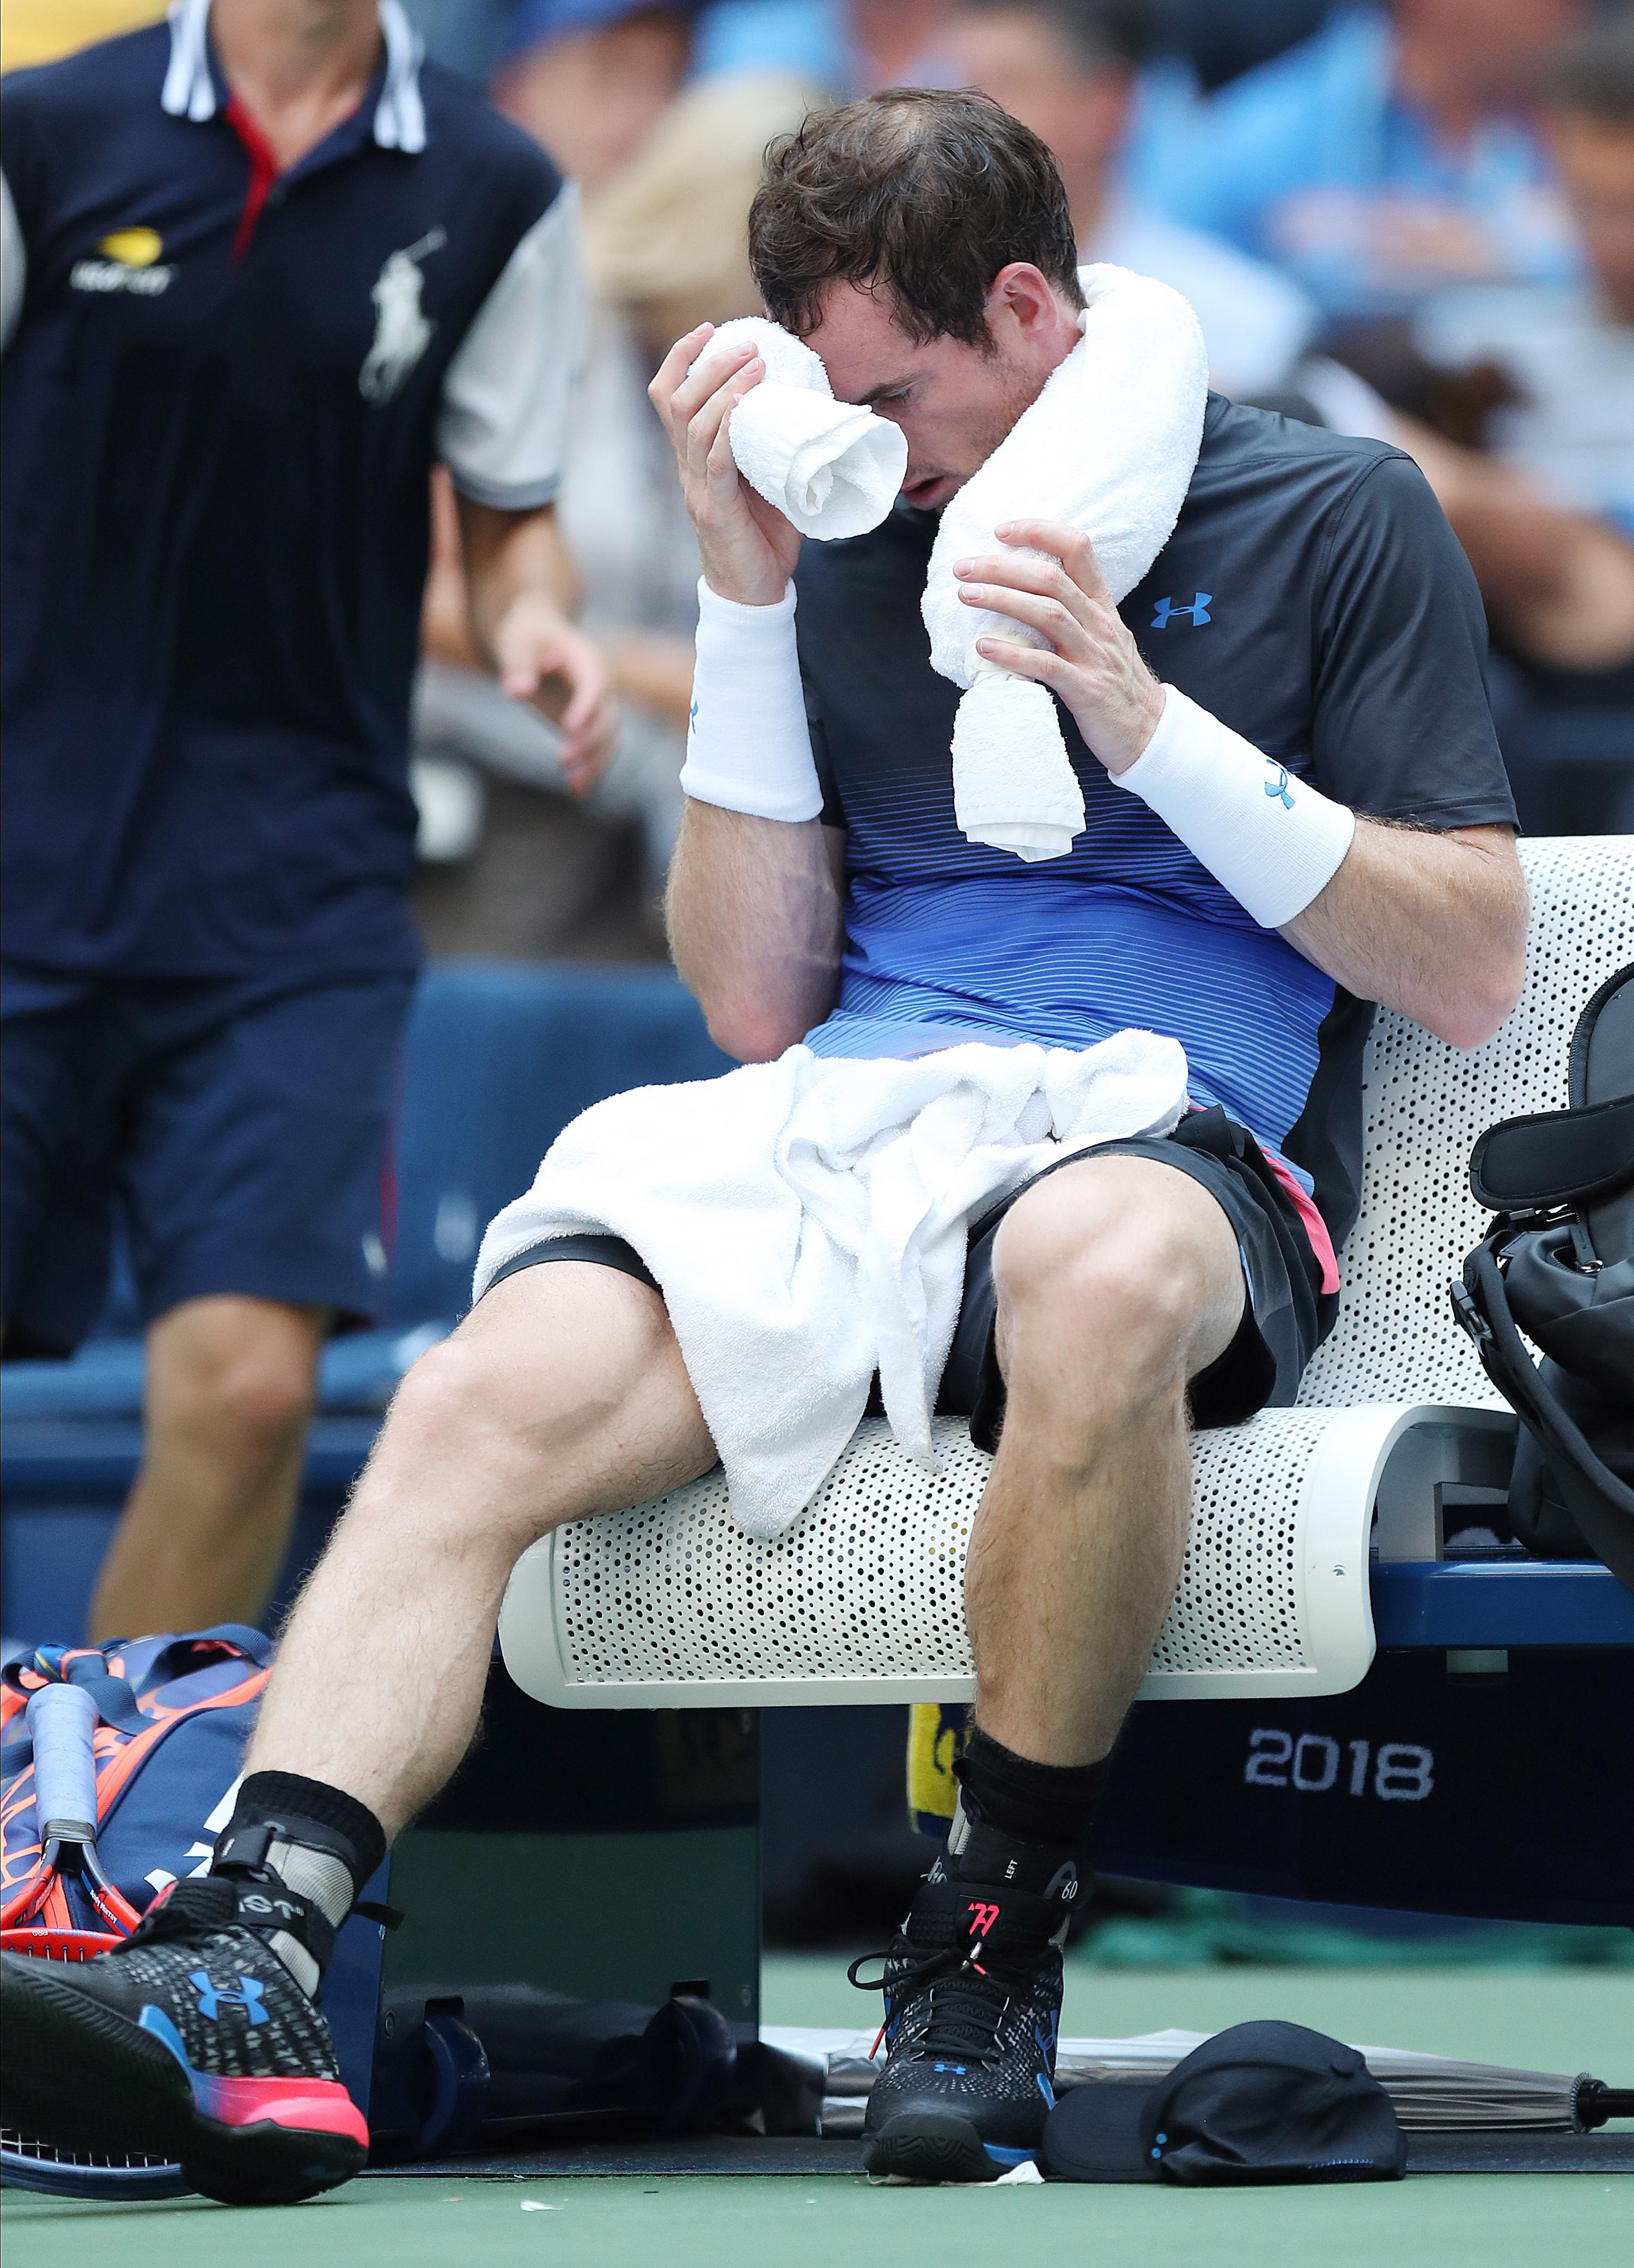 Murray suffered in the heat on Arthur Ashe as he fell in the second round to Fernando Verdasco